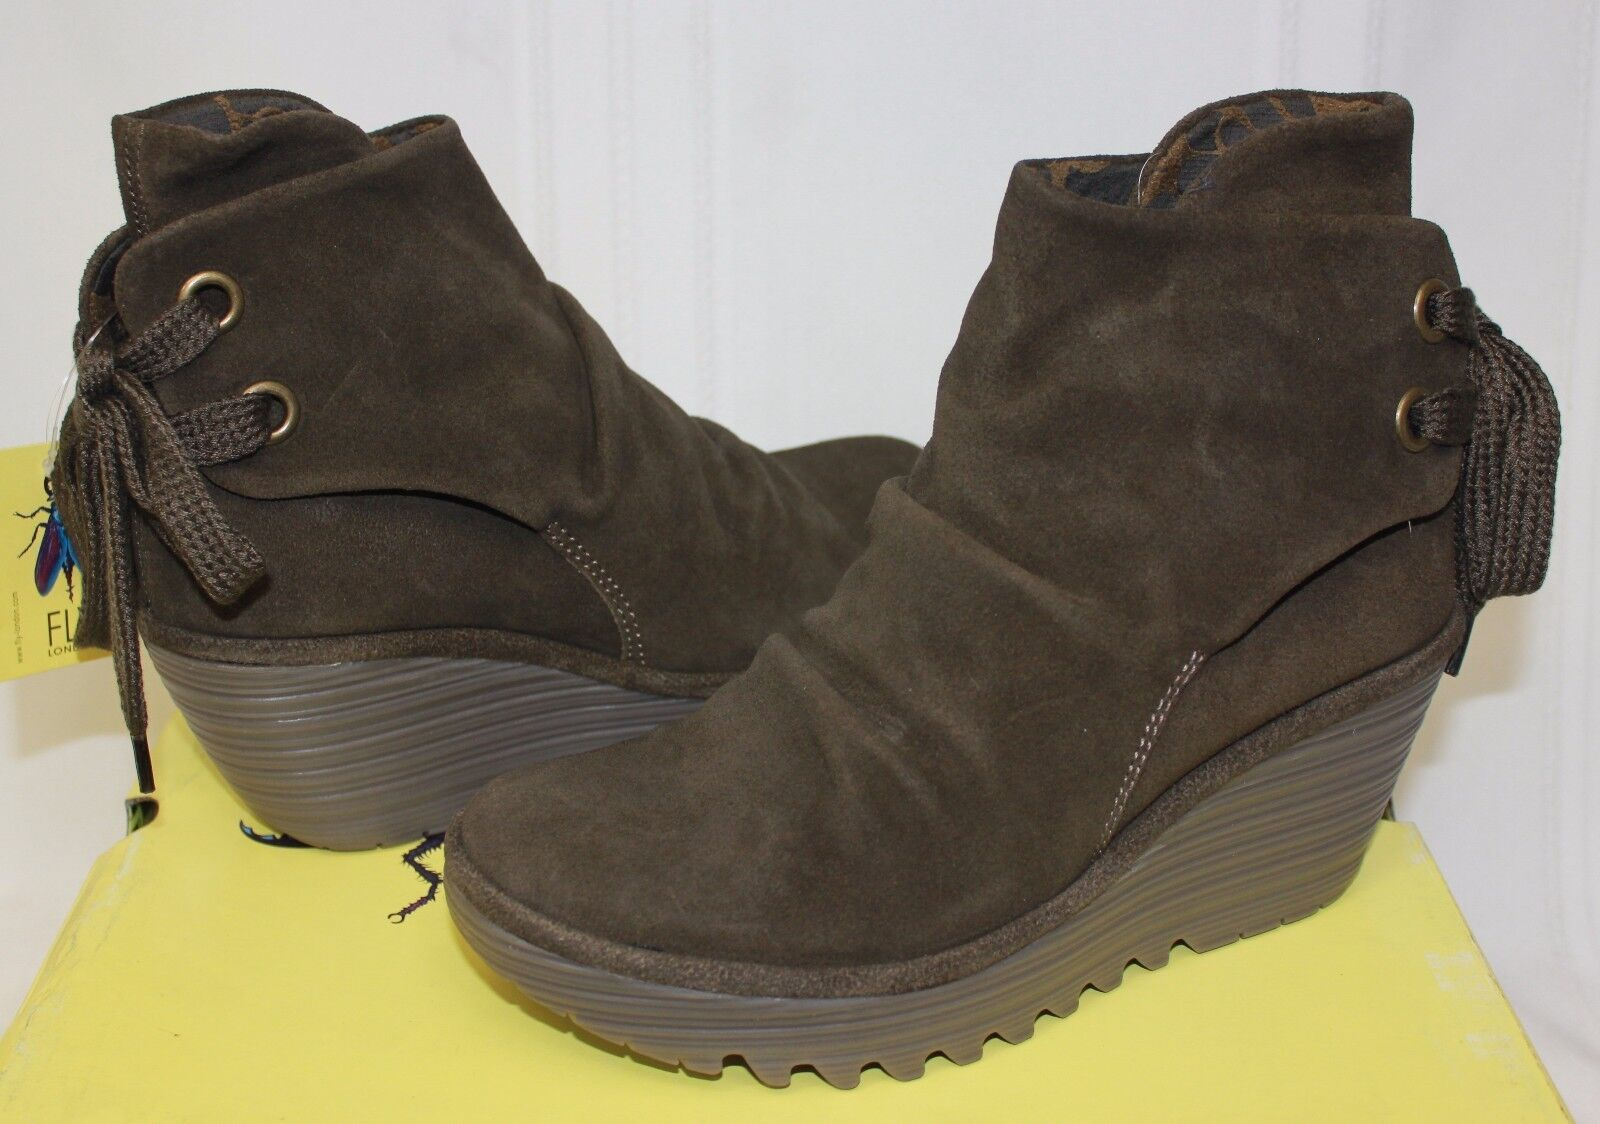 FLY LONDON Yama Wedges Sludge Oil suede Stiefel New With Box